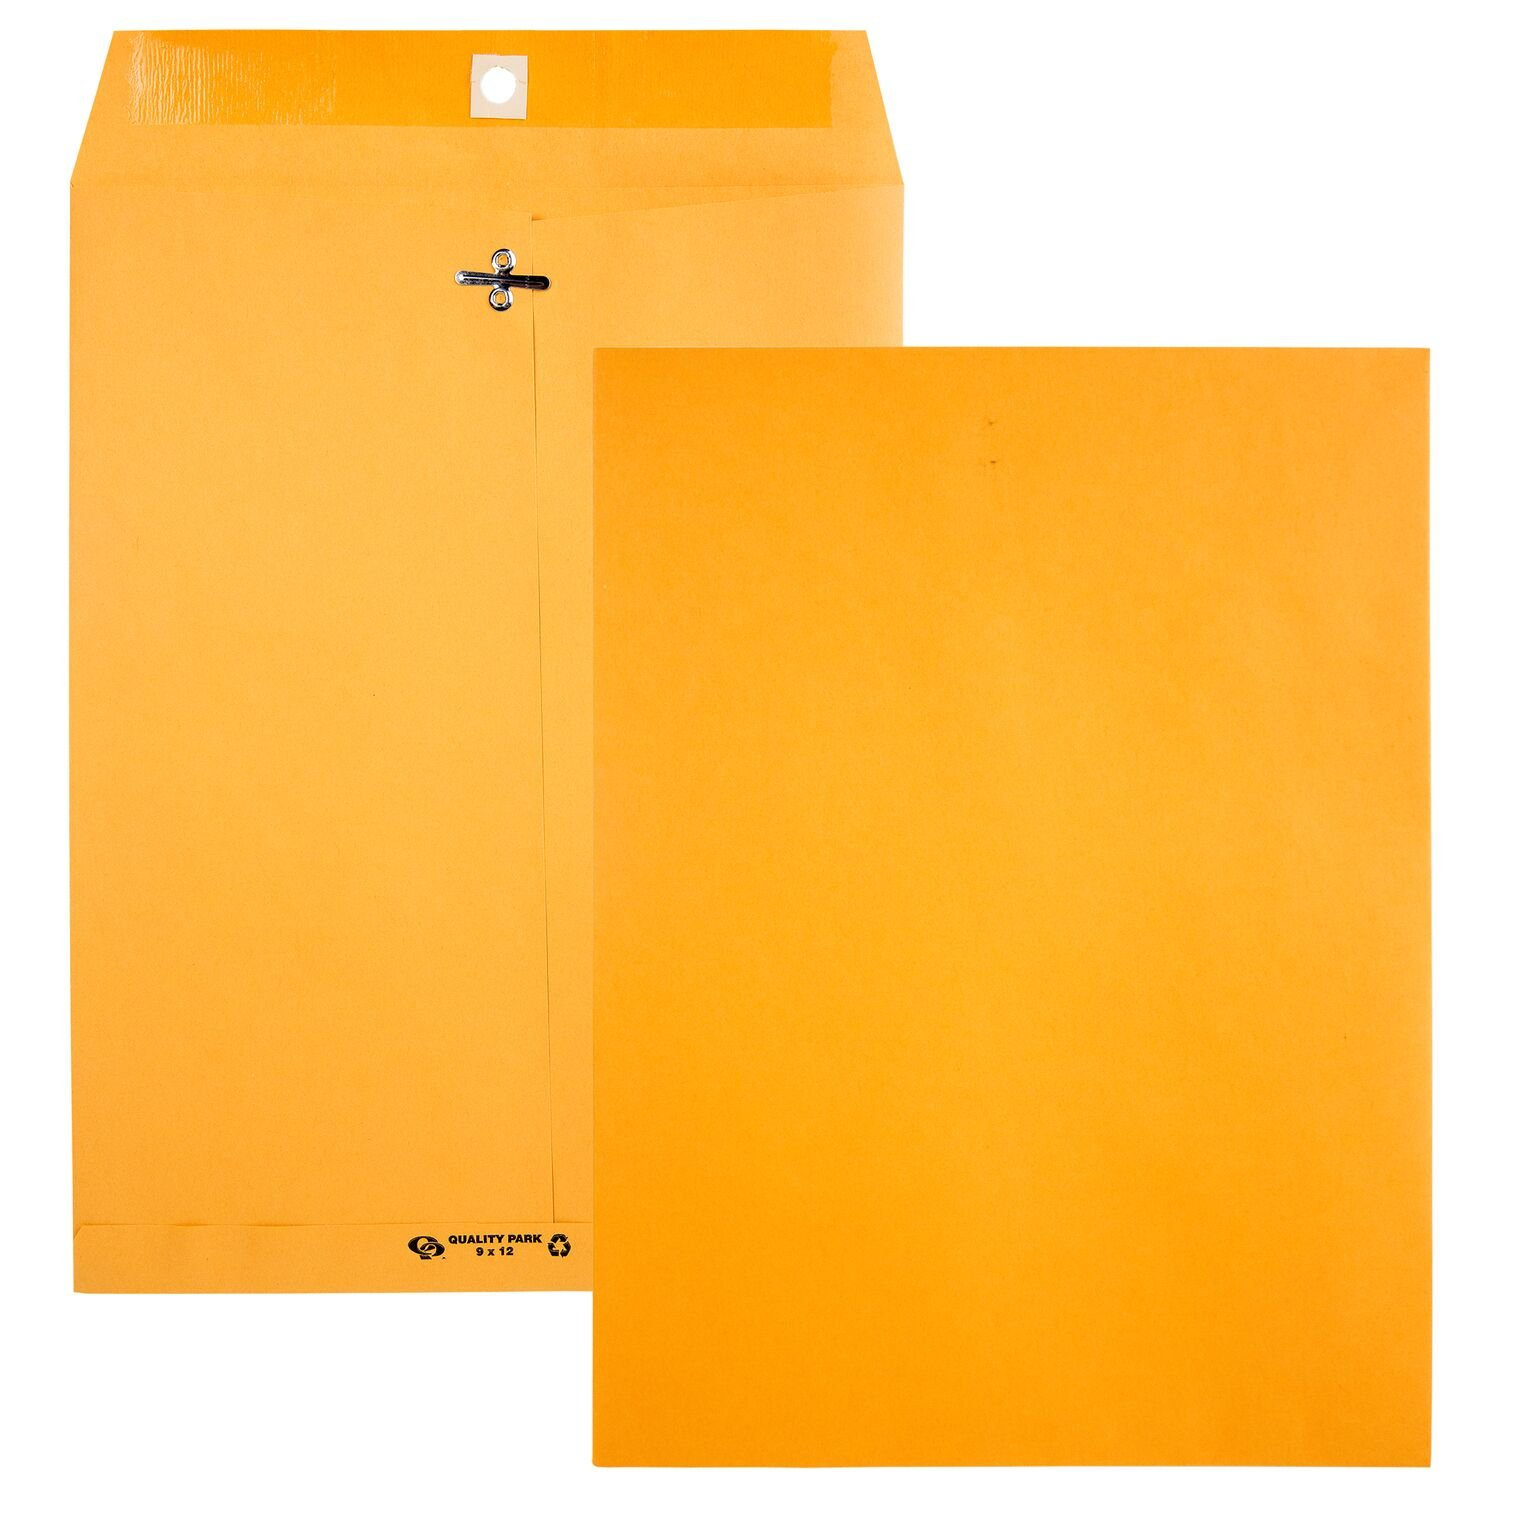 Quality Park 9 x 12 Recycled Clasp Envelopes with Deeply Gummed Flaps, Great for Filing, Storage or Mailing Documents, 28 lb Brown Kraft, 100 per Box (38190)